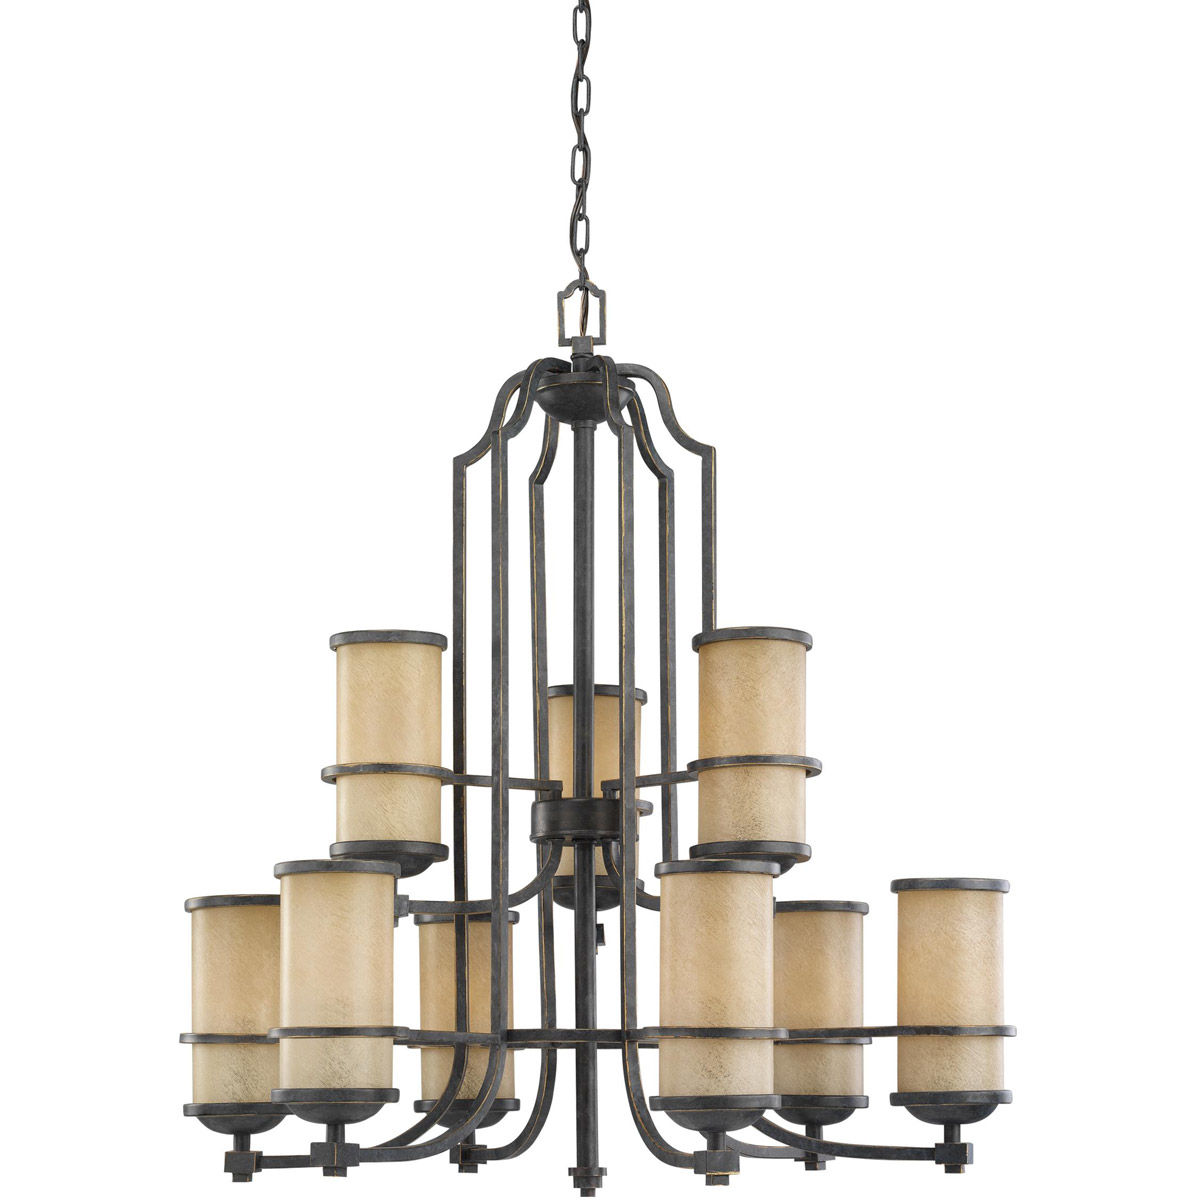 Sea Gull 31522-845 Roslyn 9 Light 31 inch Flemish Bronze Chandelier Ceiling Light in Standard photo